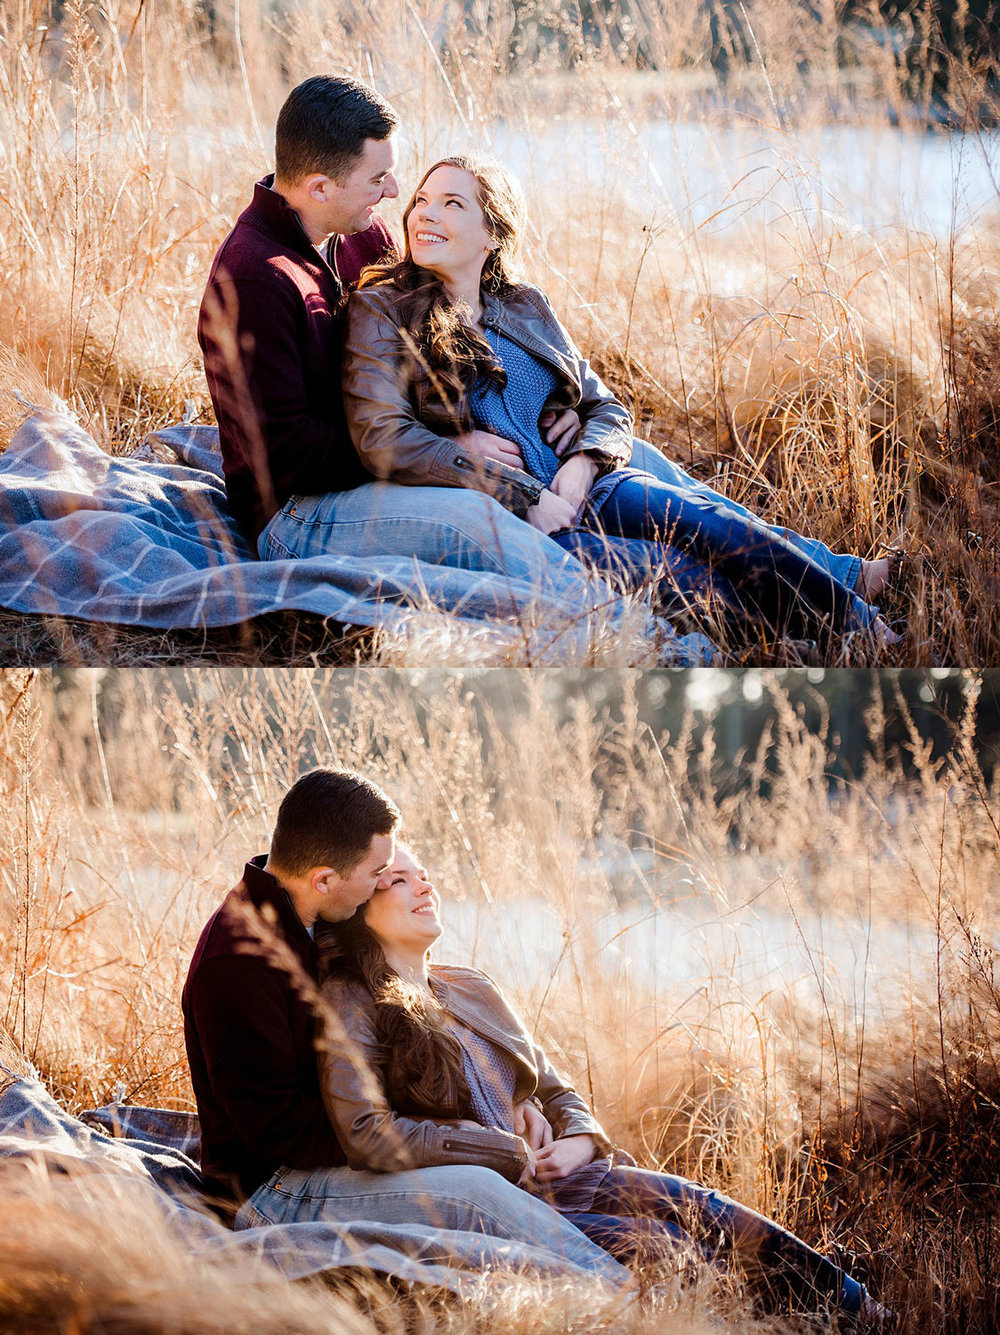 engagement-photos-virginia-beach-melissa-bliss-photography.jpg